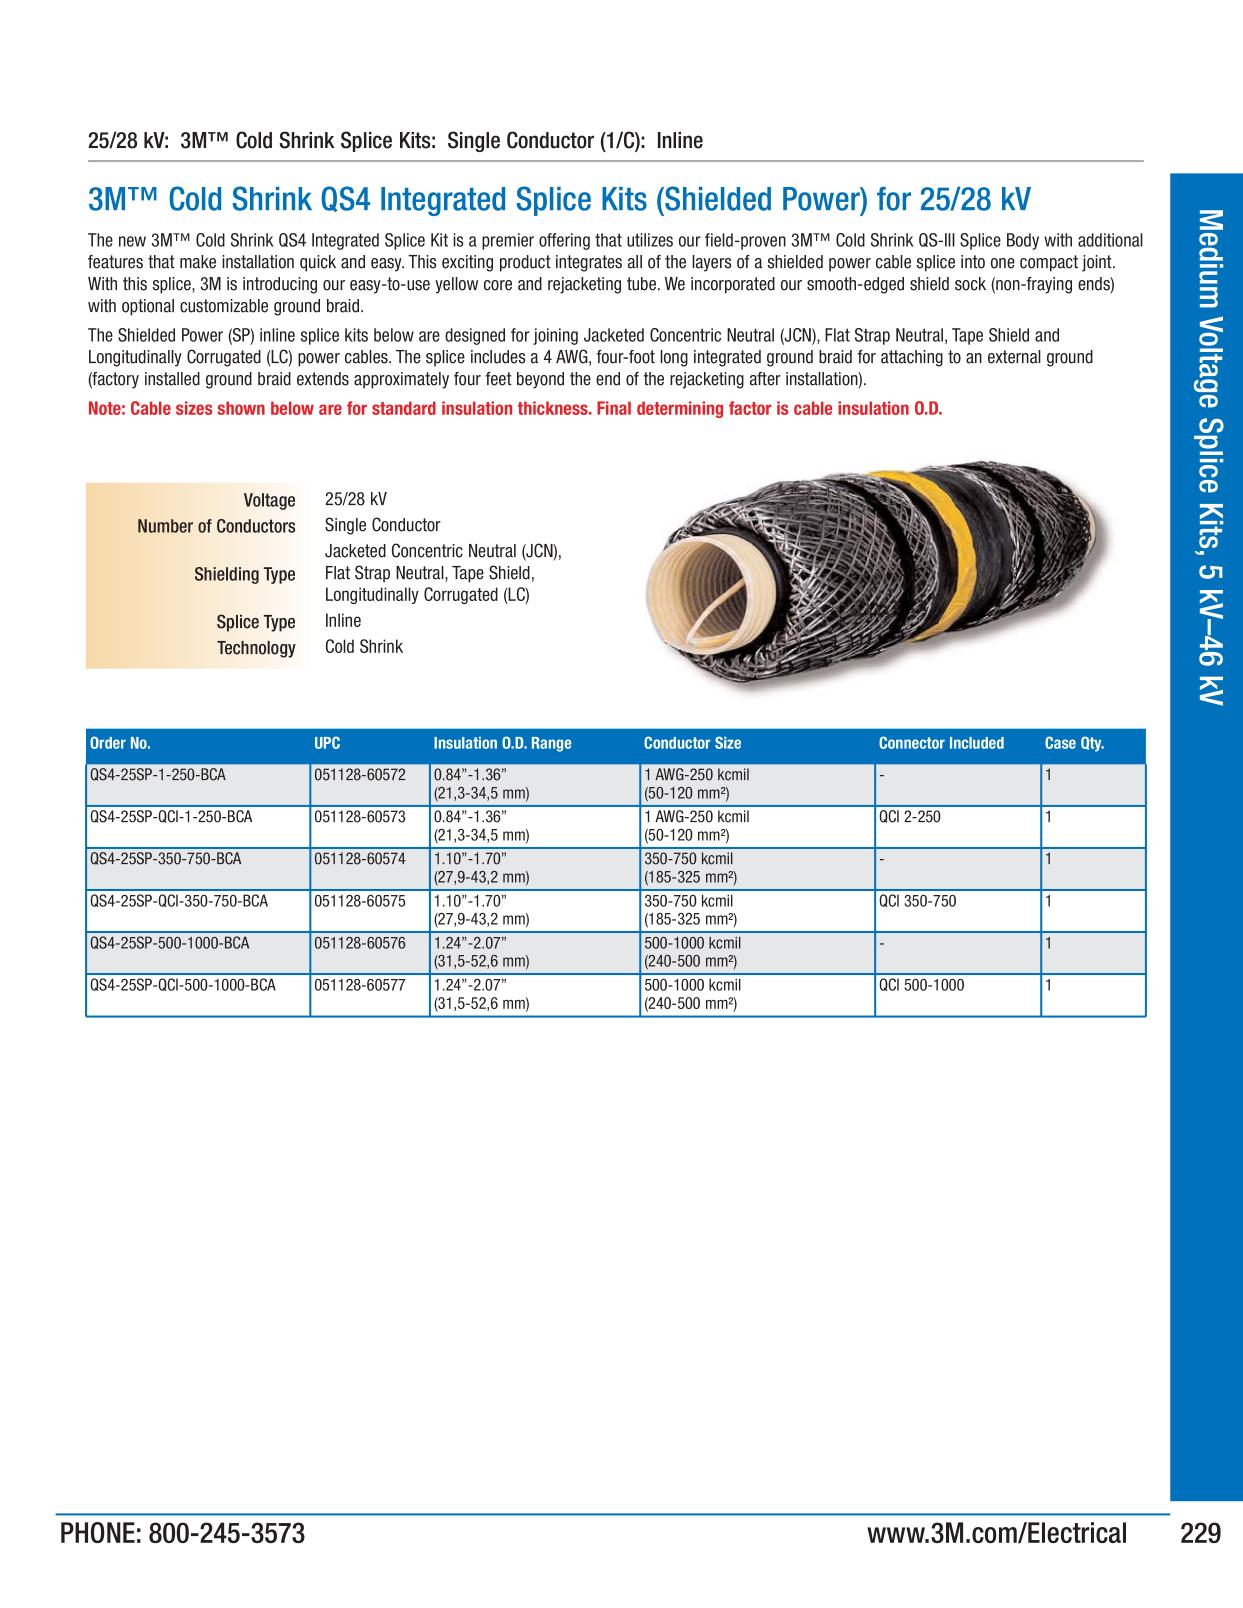 Medium voltage splice kits 5 kv 46 kv 3m electrical products medium voltage splice kits 5 kv 46 kv 3m electrical products page 229 keyboard keysfo Images